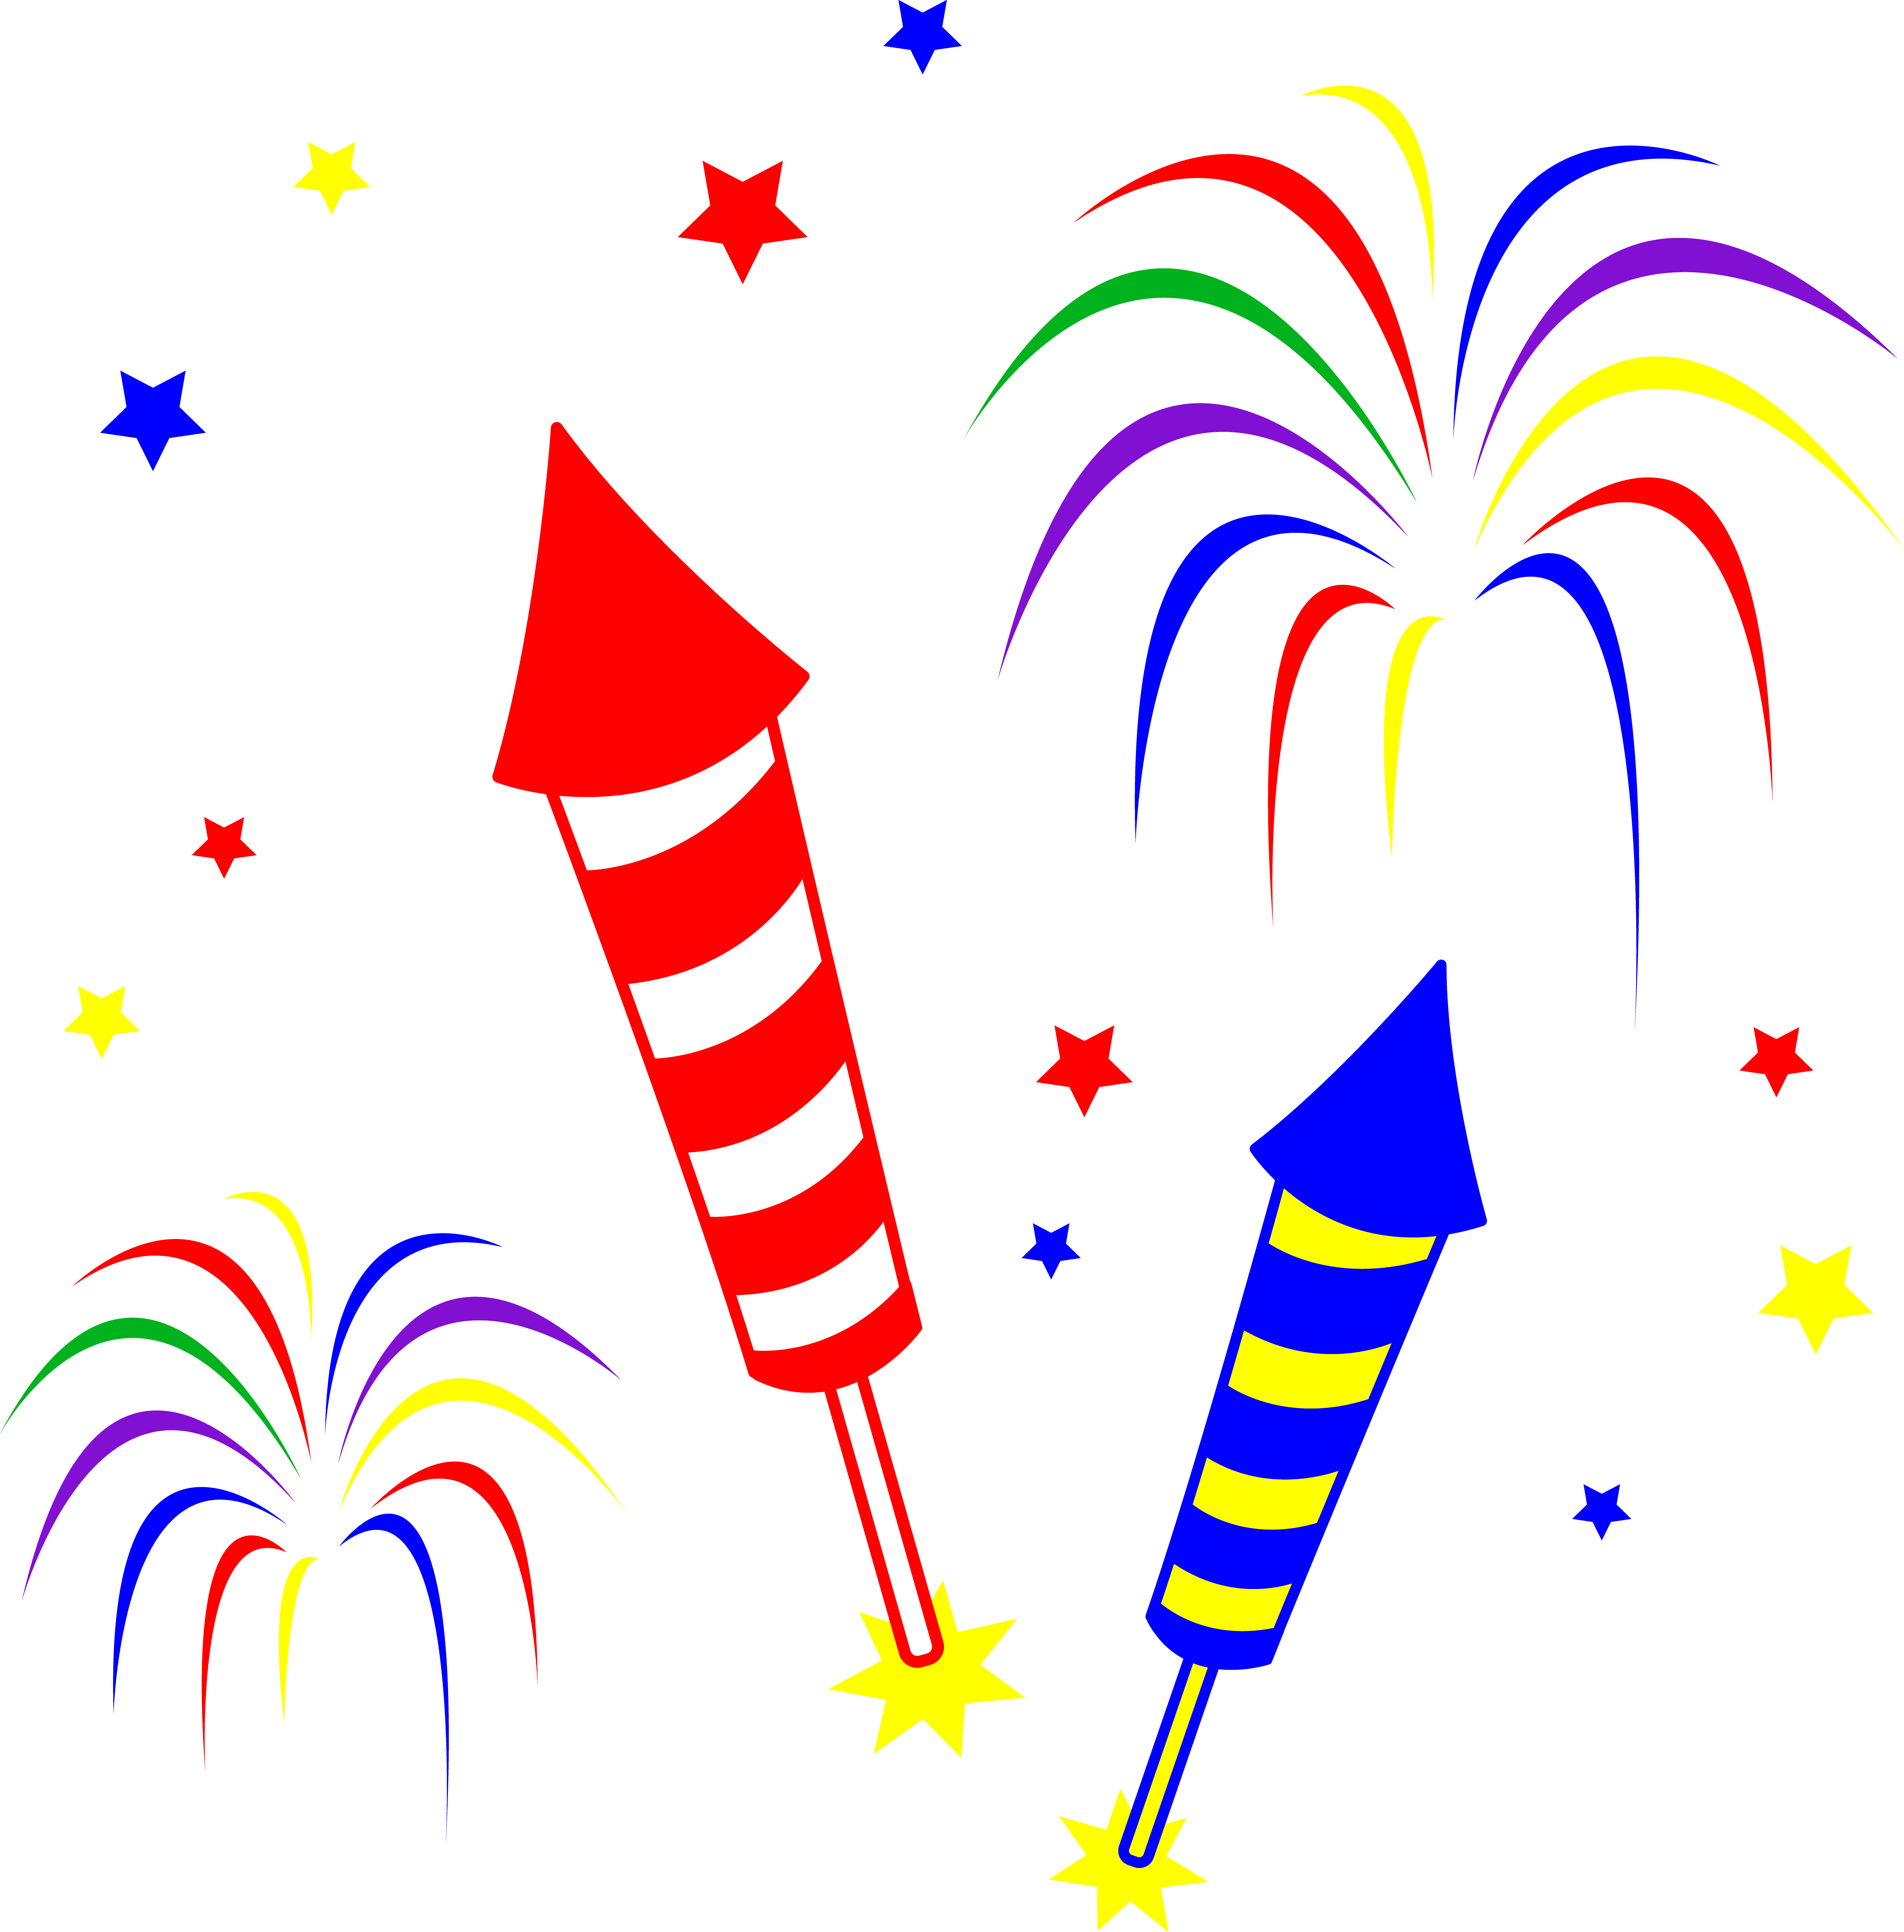 Fireworks panda free images. Celebrate clipart firecracker